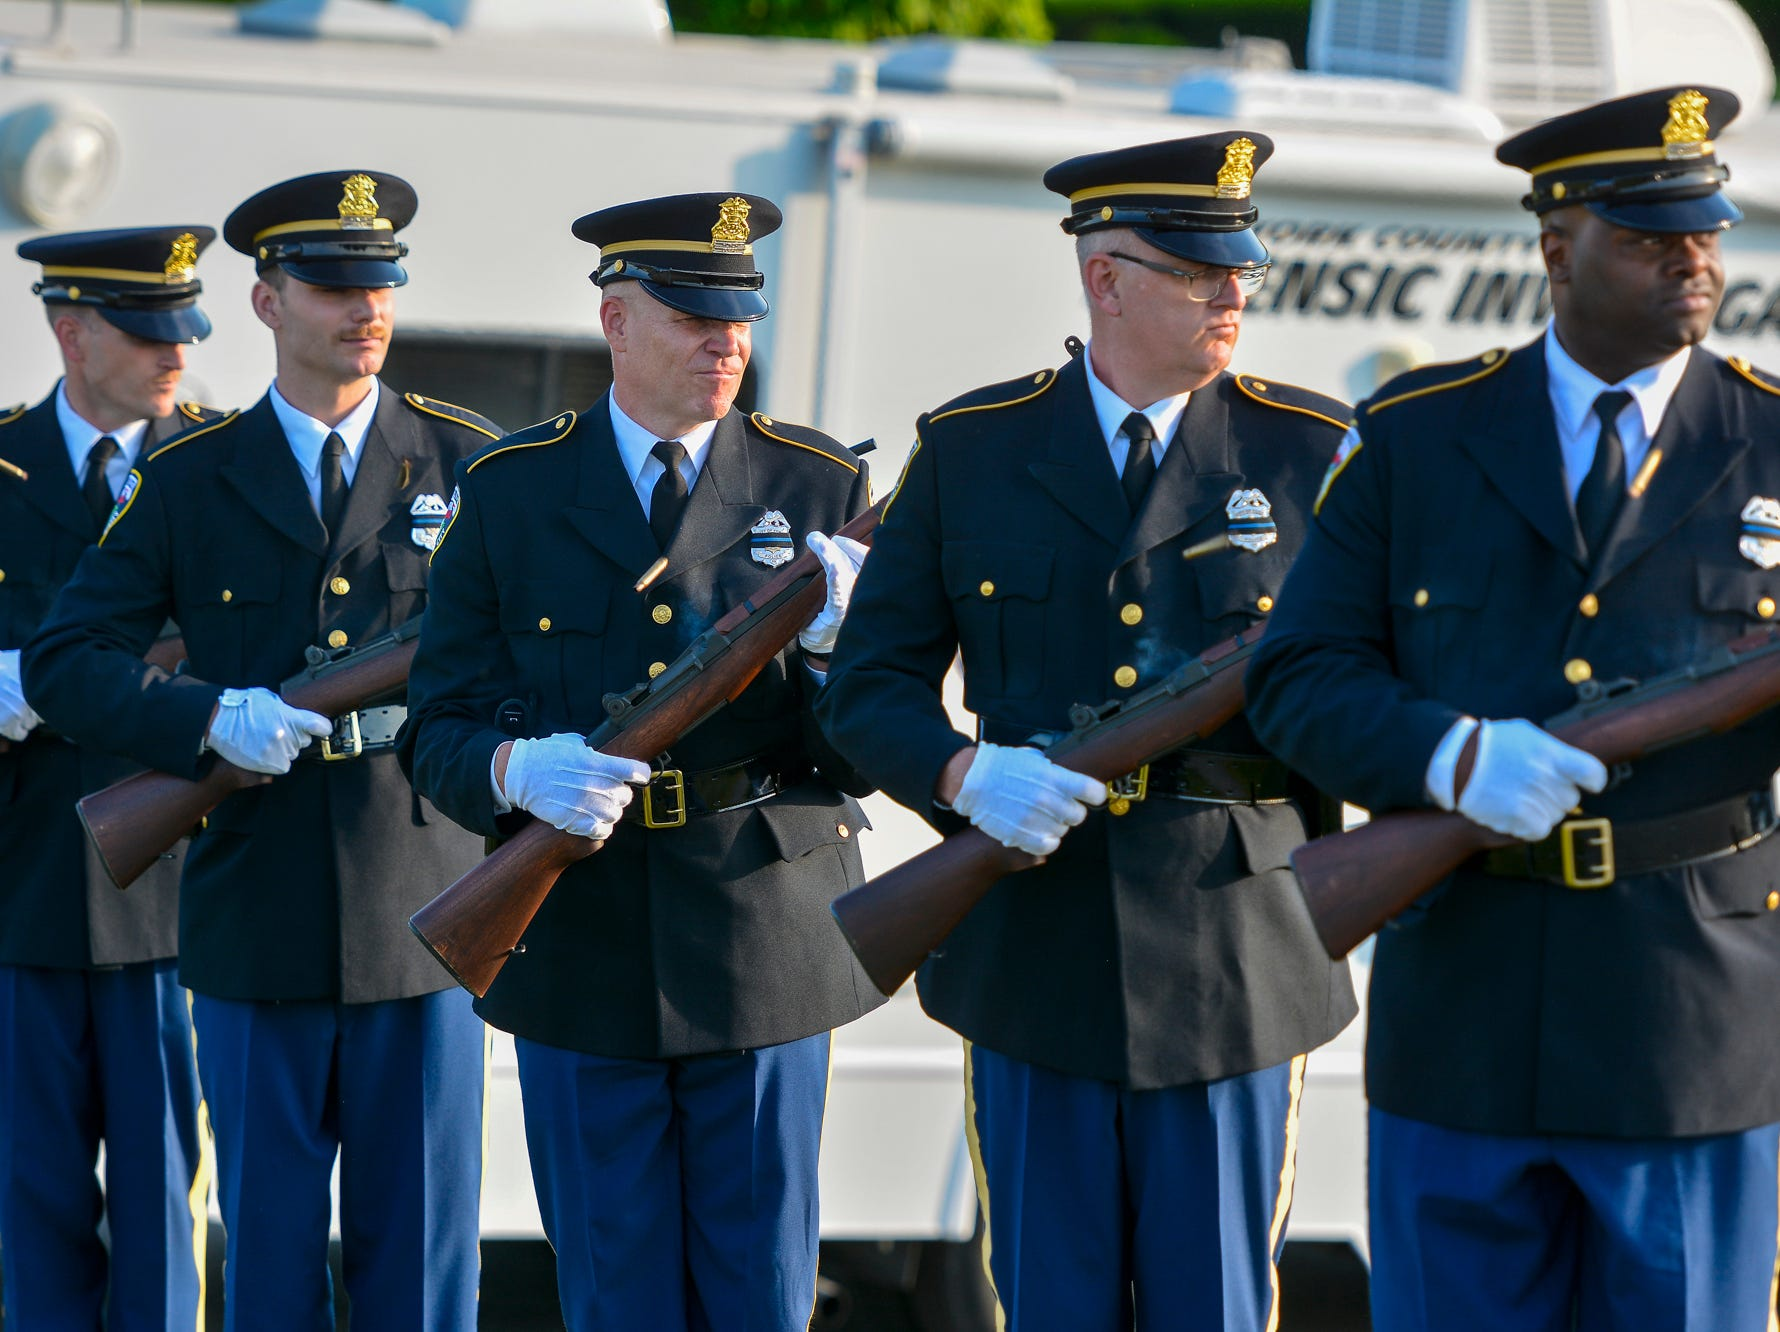 The York City Police Honor Guard fire a three-round salute during the Law Enforcement Community Remembrance event at Prospect Hill Cemetery,  Tuesday, May 7, 2019.